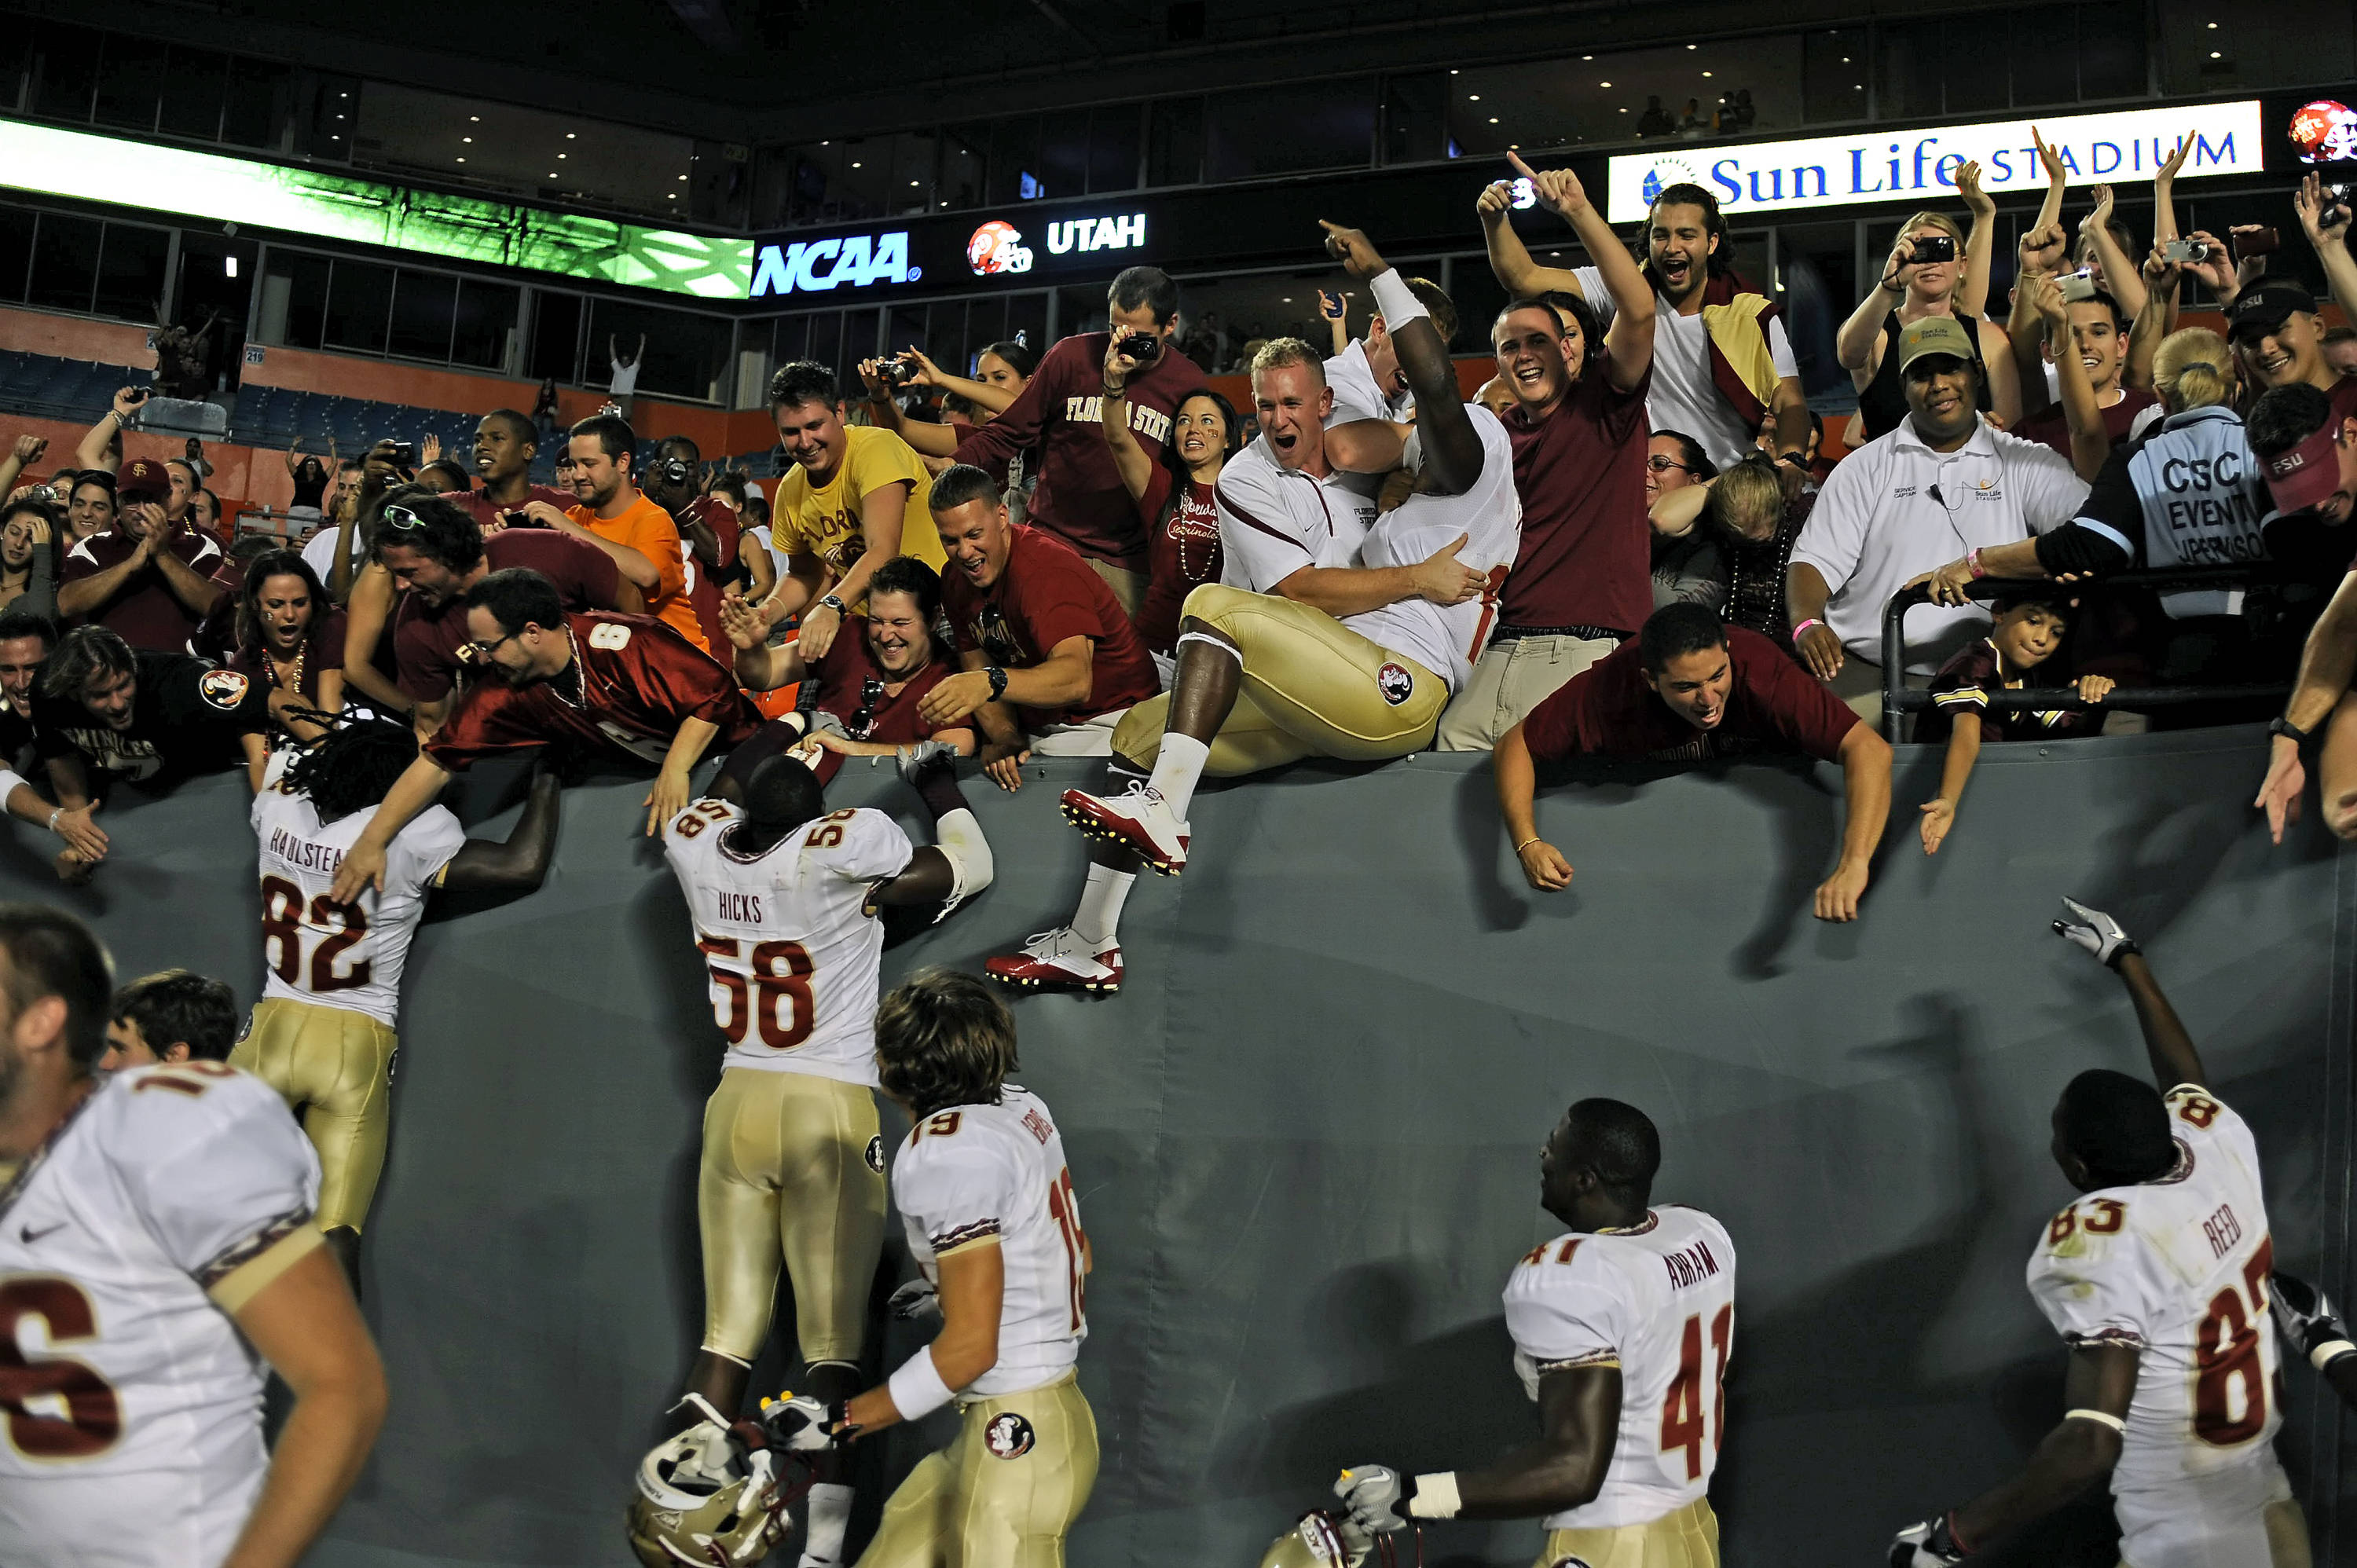 Players celebrate with exuberant fans after the Seminoles defeated Miami 45-17.